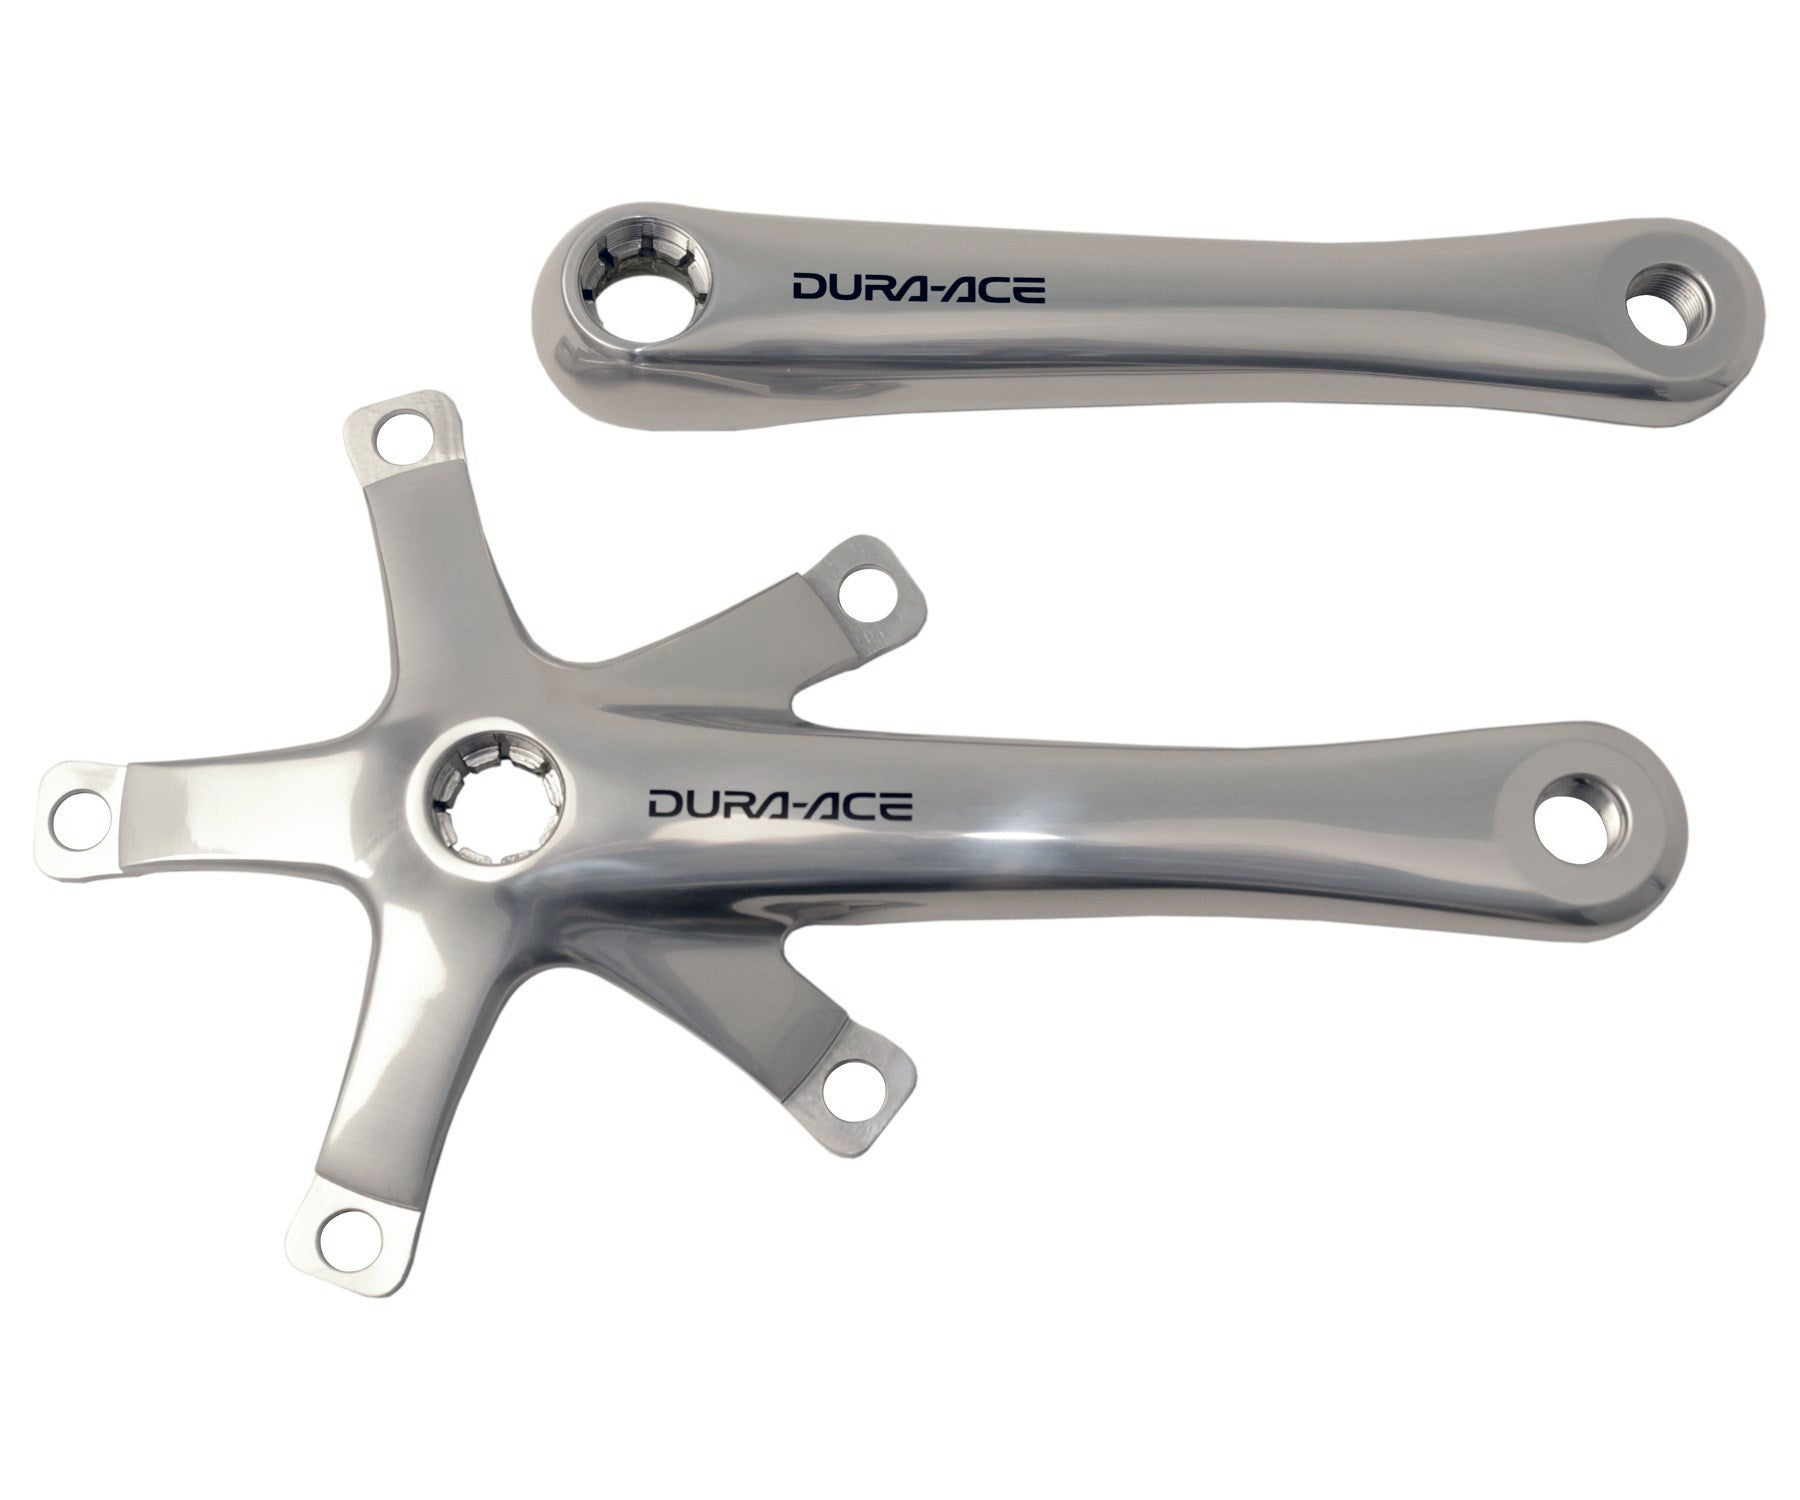 Shimano Dura Ace 7710 track crank arms - Retrogression